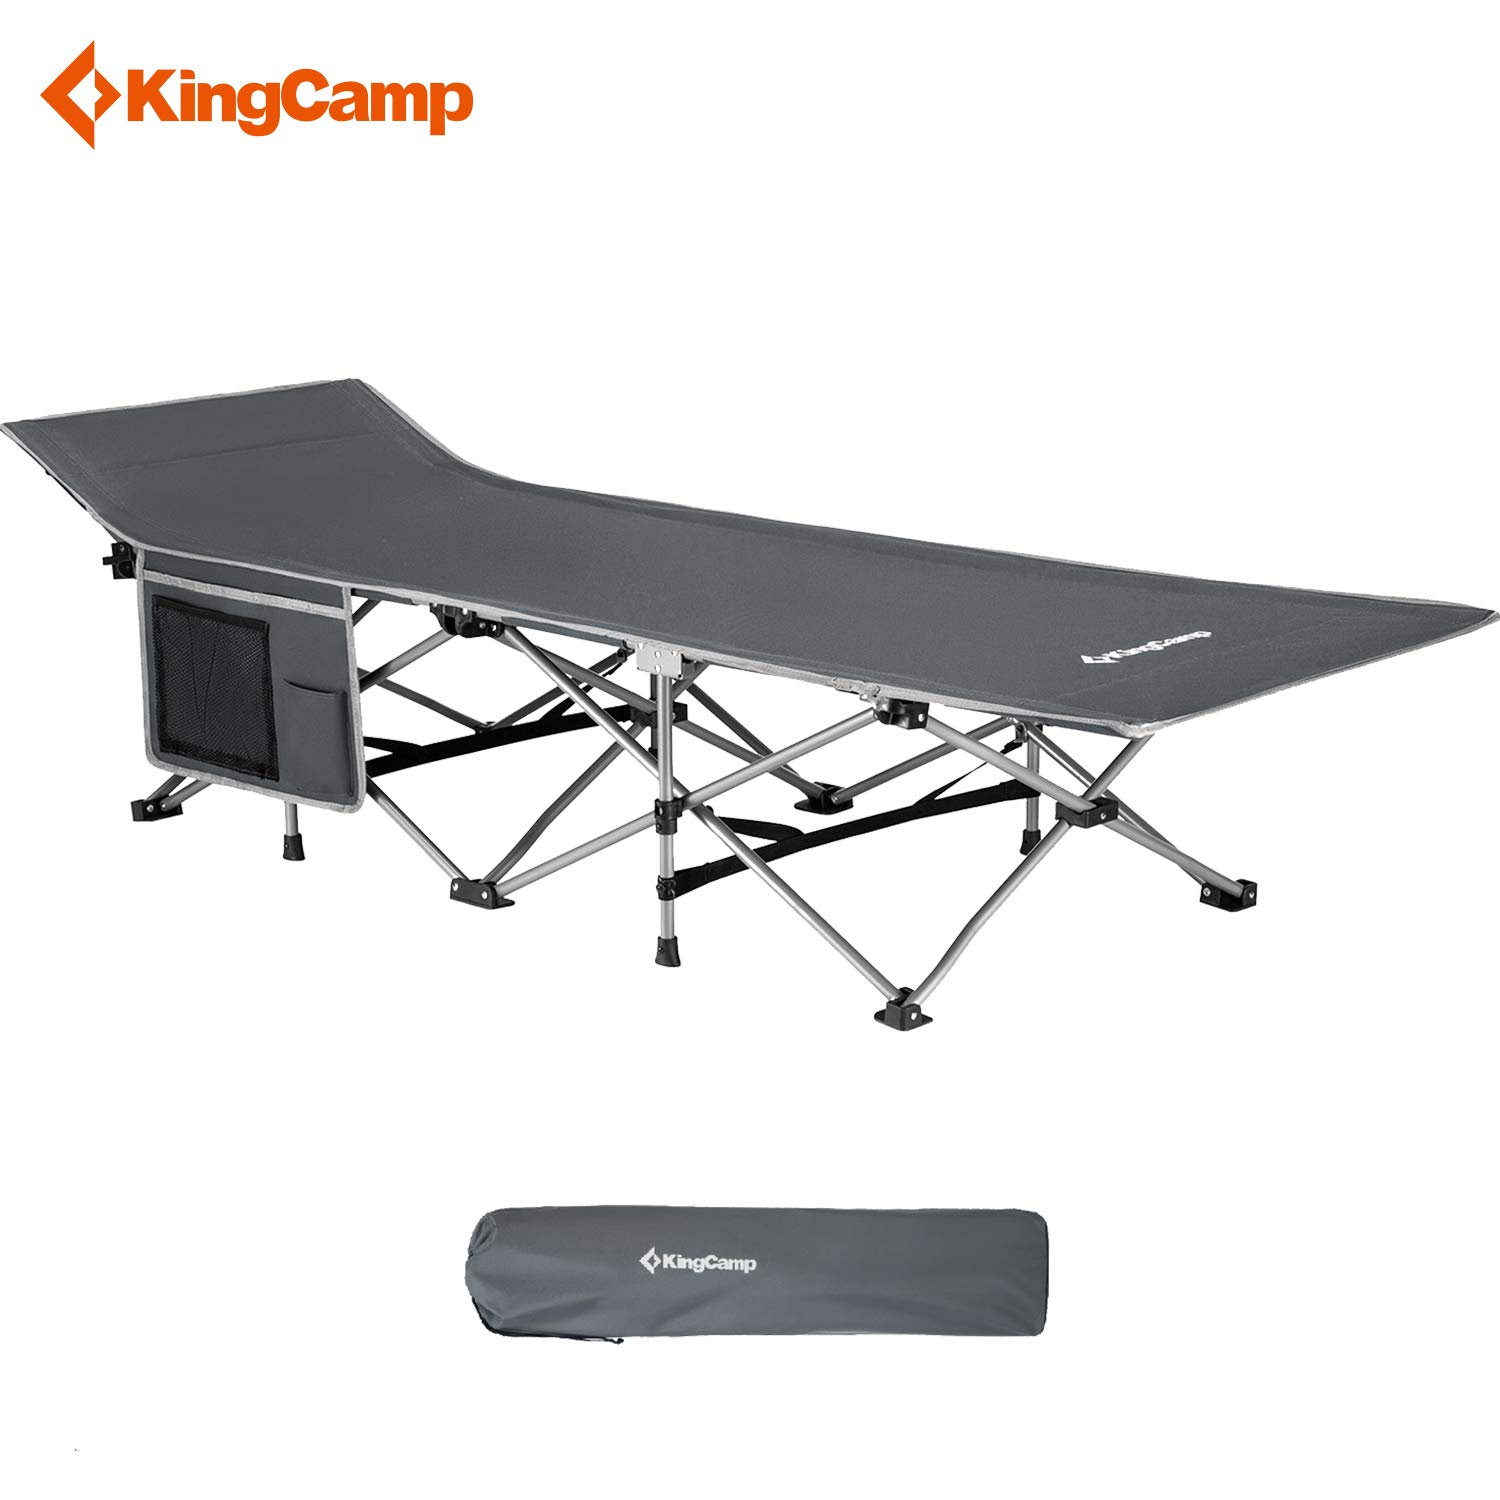 Portable and Lightweight Bed for Indoor /& Outdoor Use KingCamp Folding Camping Cot with Carry Bag Black Blue and Grey